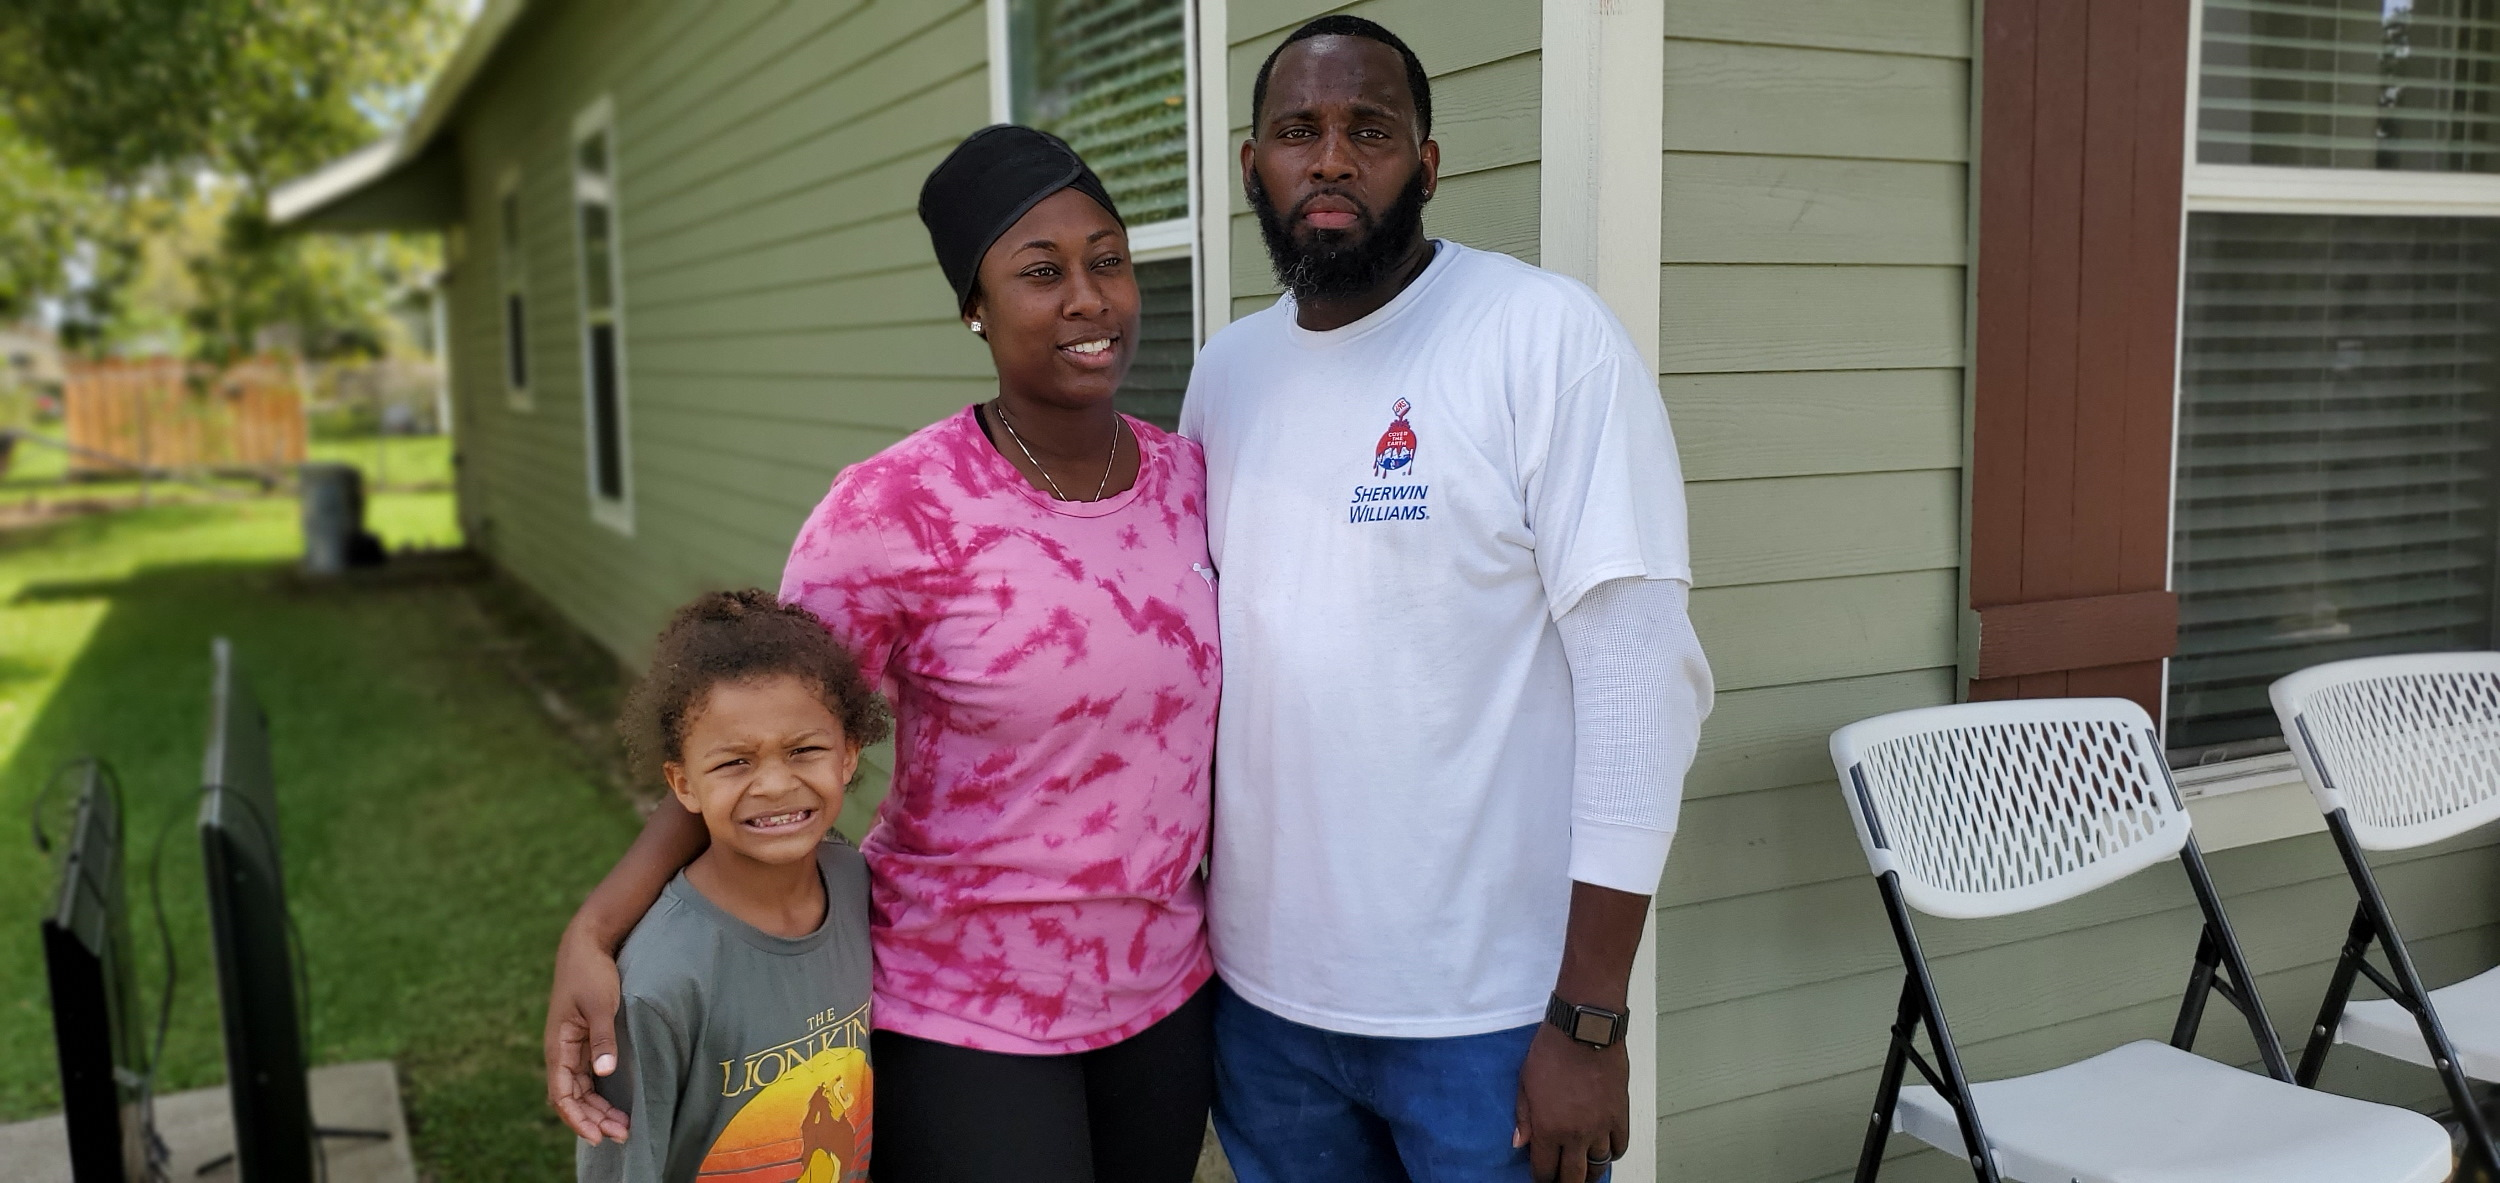 Ebony Sparks and her husband, Christopher, adjust to the harsh reality of a flooded home. Ebony expressed sincere gratitude for the help from Church members.